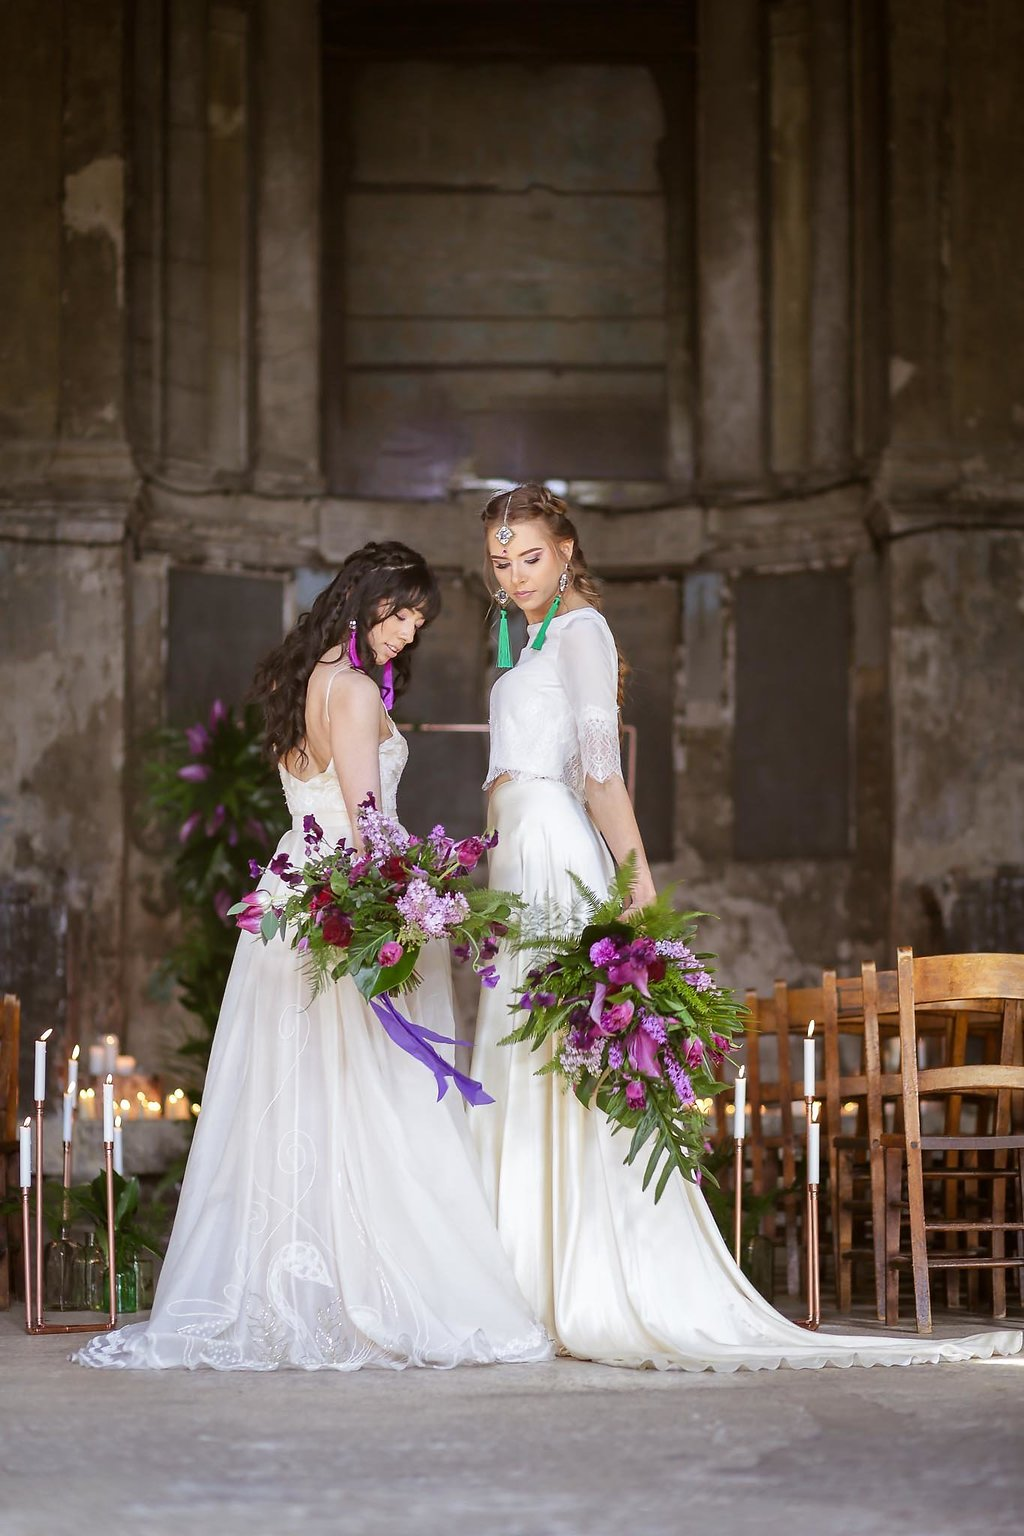 Rock the Purple Love - Gido Weddings - The Asylum Chapel - alternative wedding inspiration 117 - Urban, modern wedding